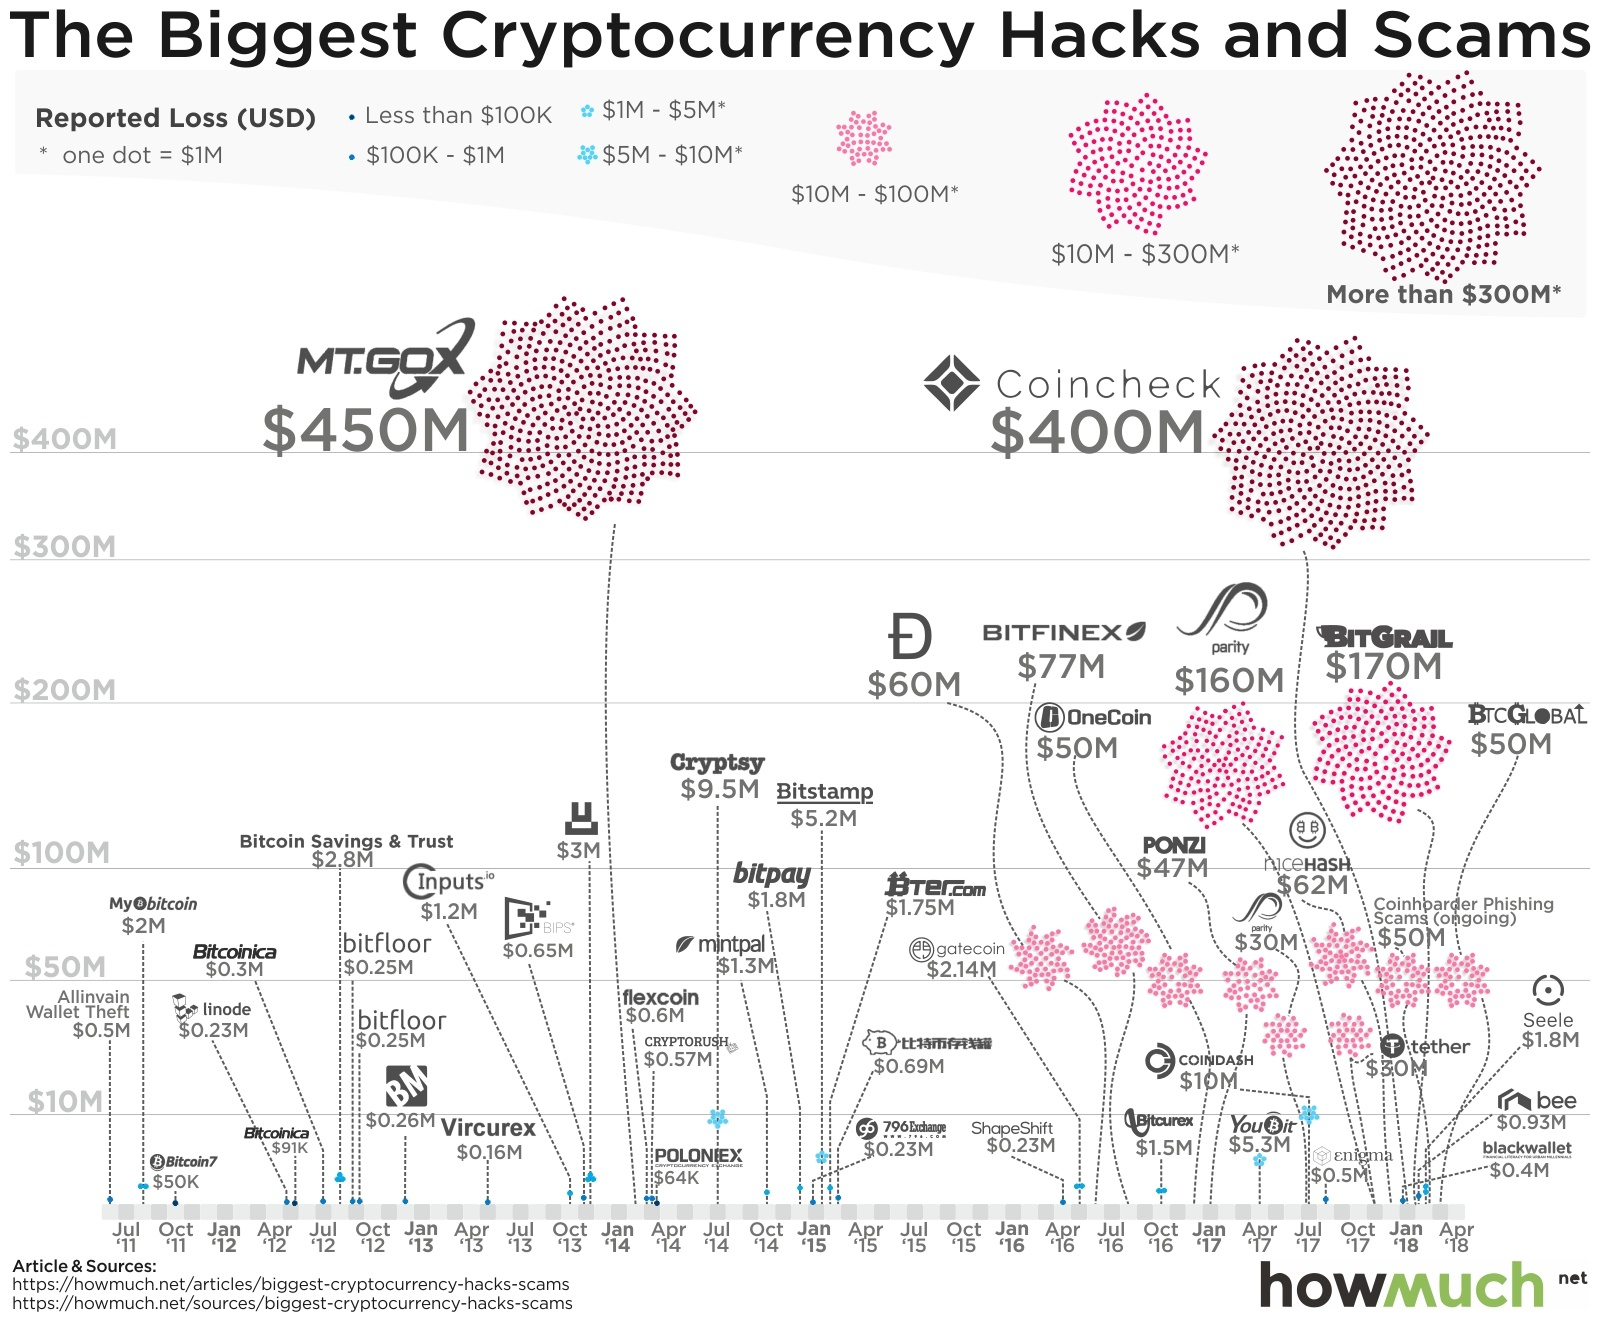 Infographic: Major Cryptocurrency Breaches and Heists Piling Up